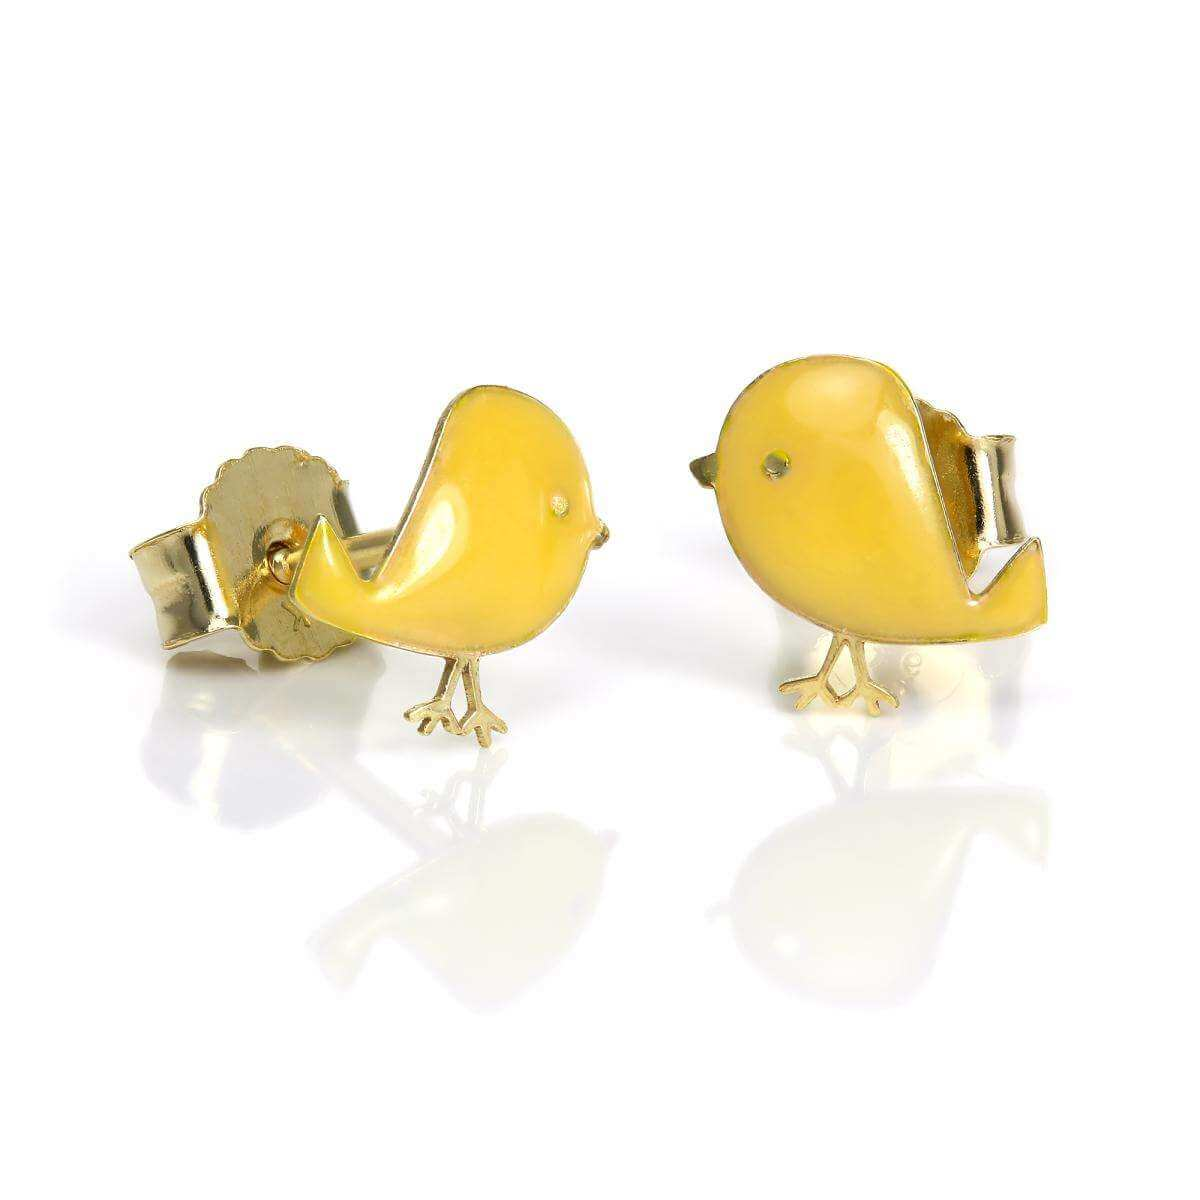 9ct Gold & Enamel Baby Chick Stud Earrings